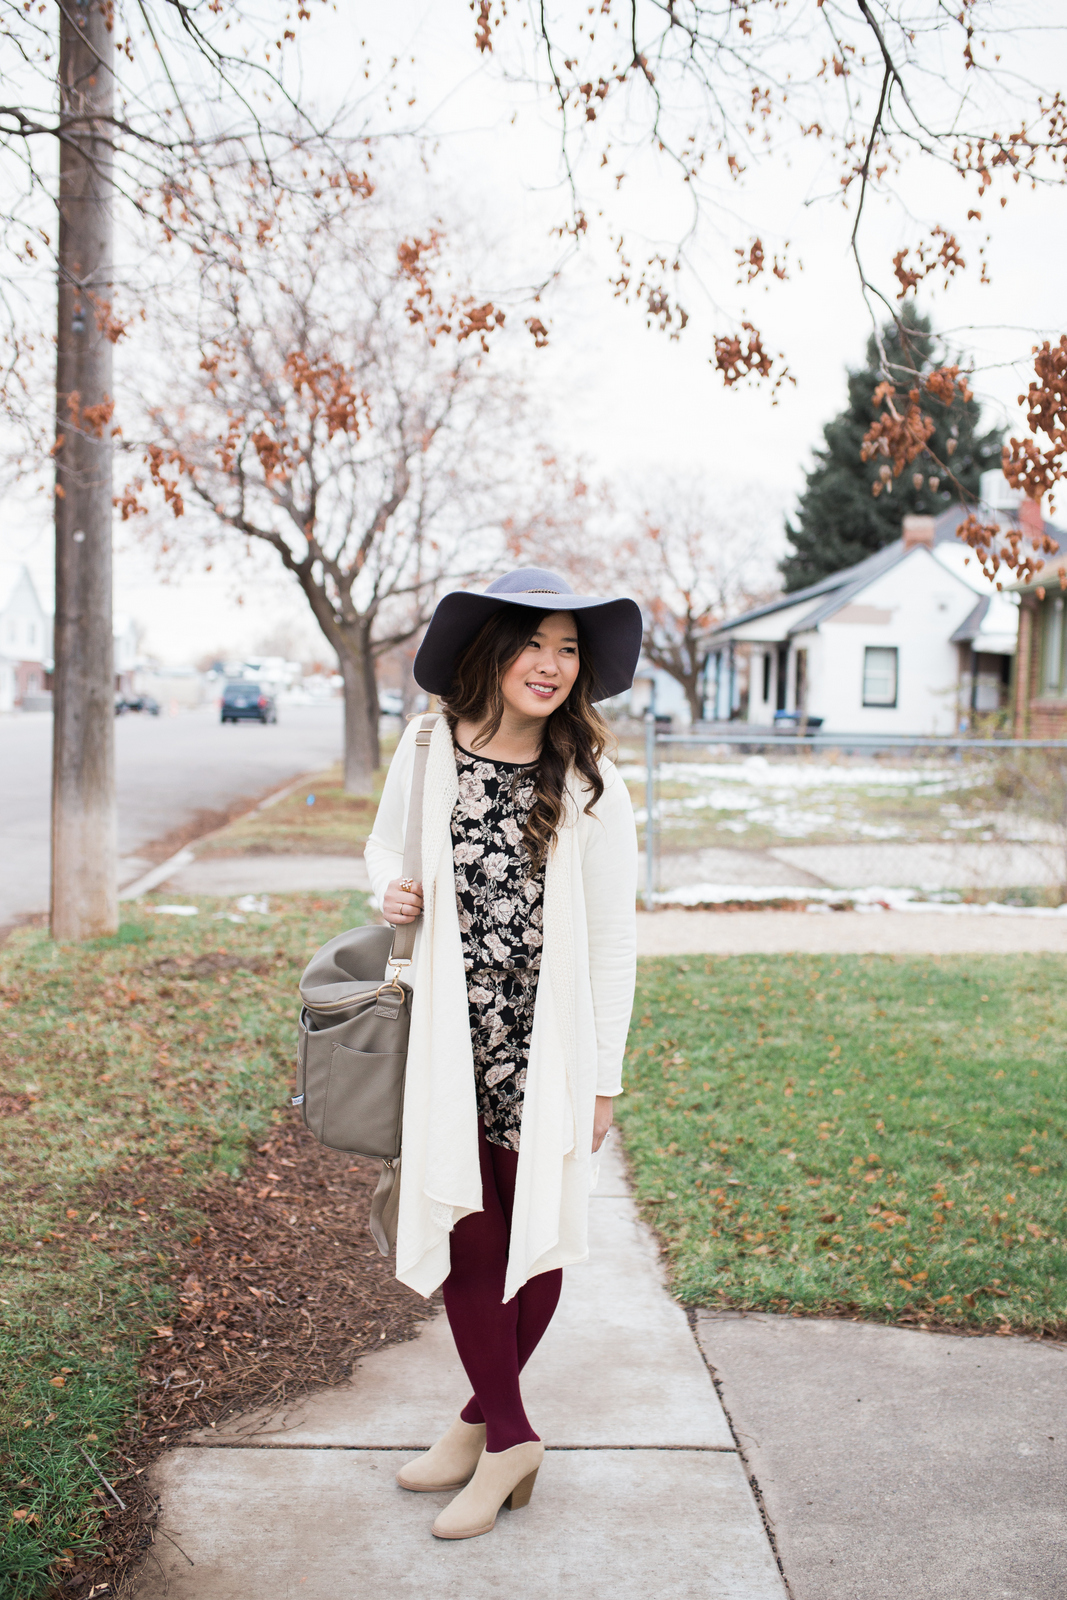 How to style a short romper in the winter